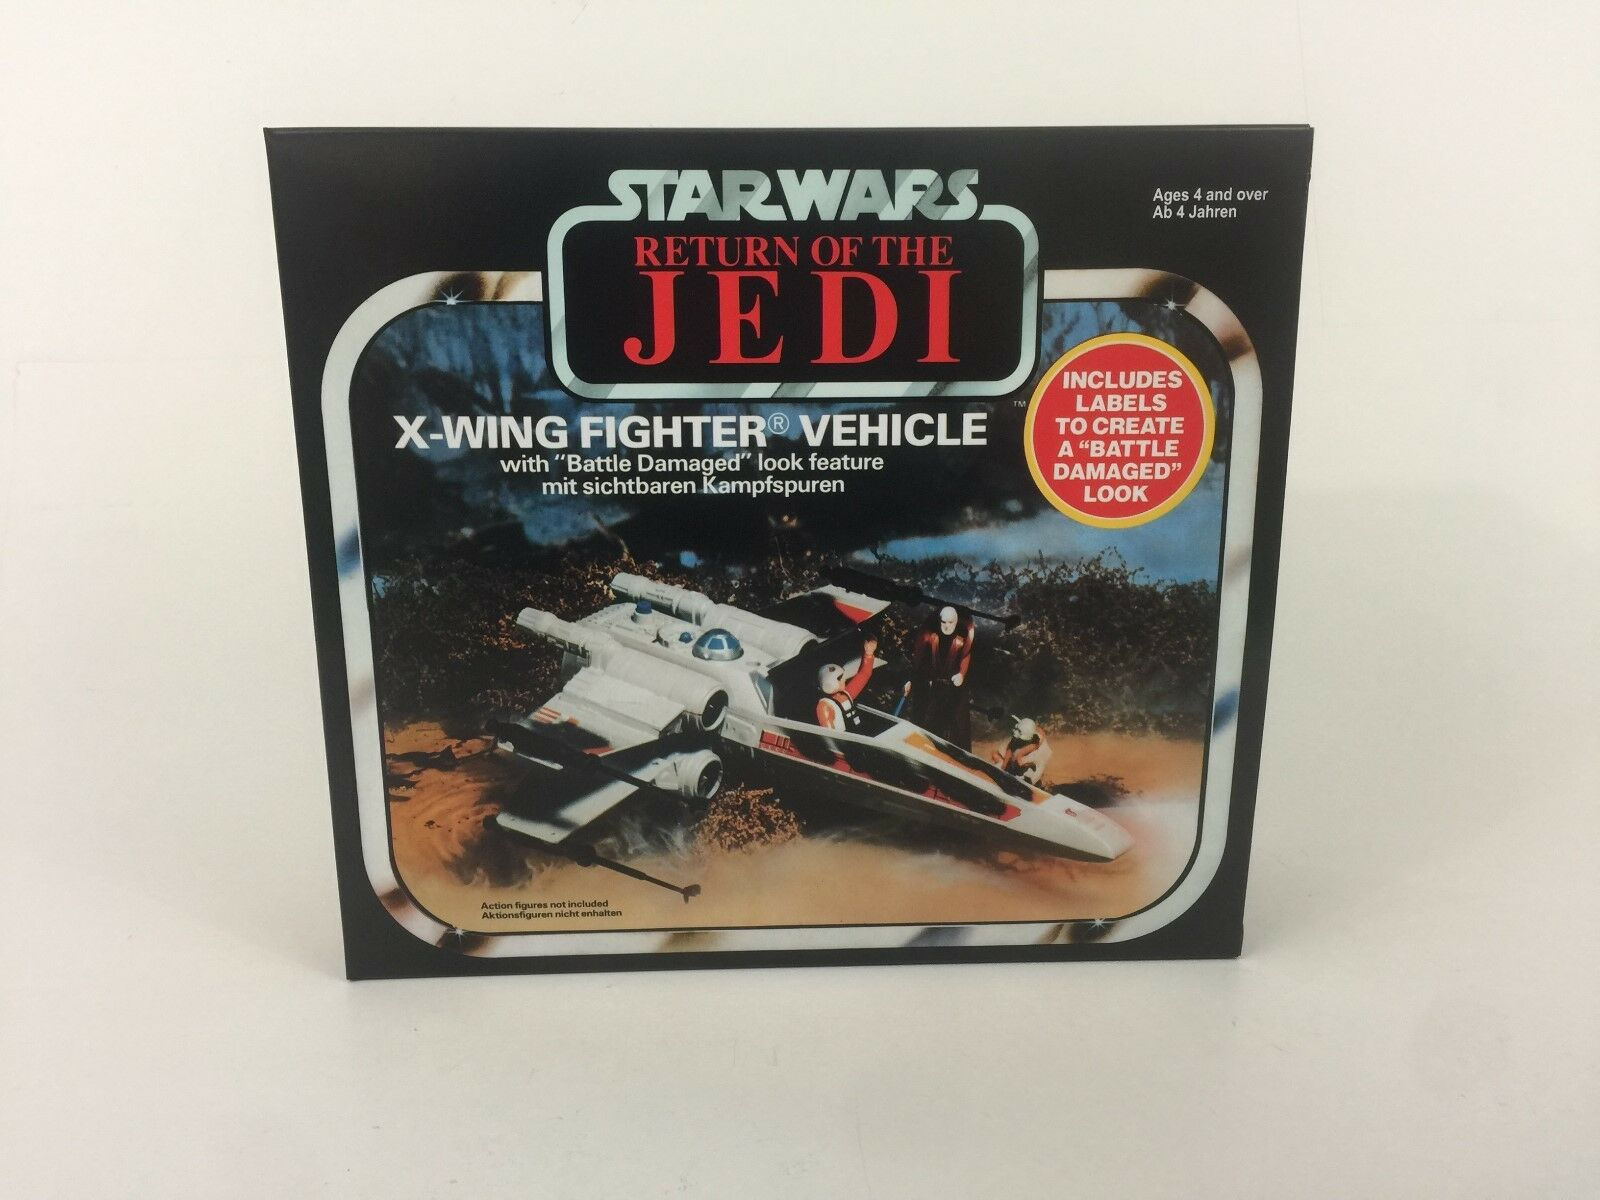 Replacement vintage star star star wars redj palitoy battle damaged x-wing box + inserts 350630